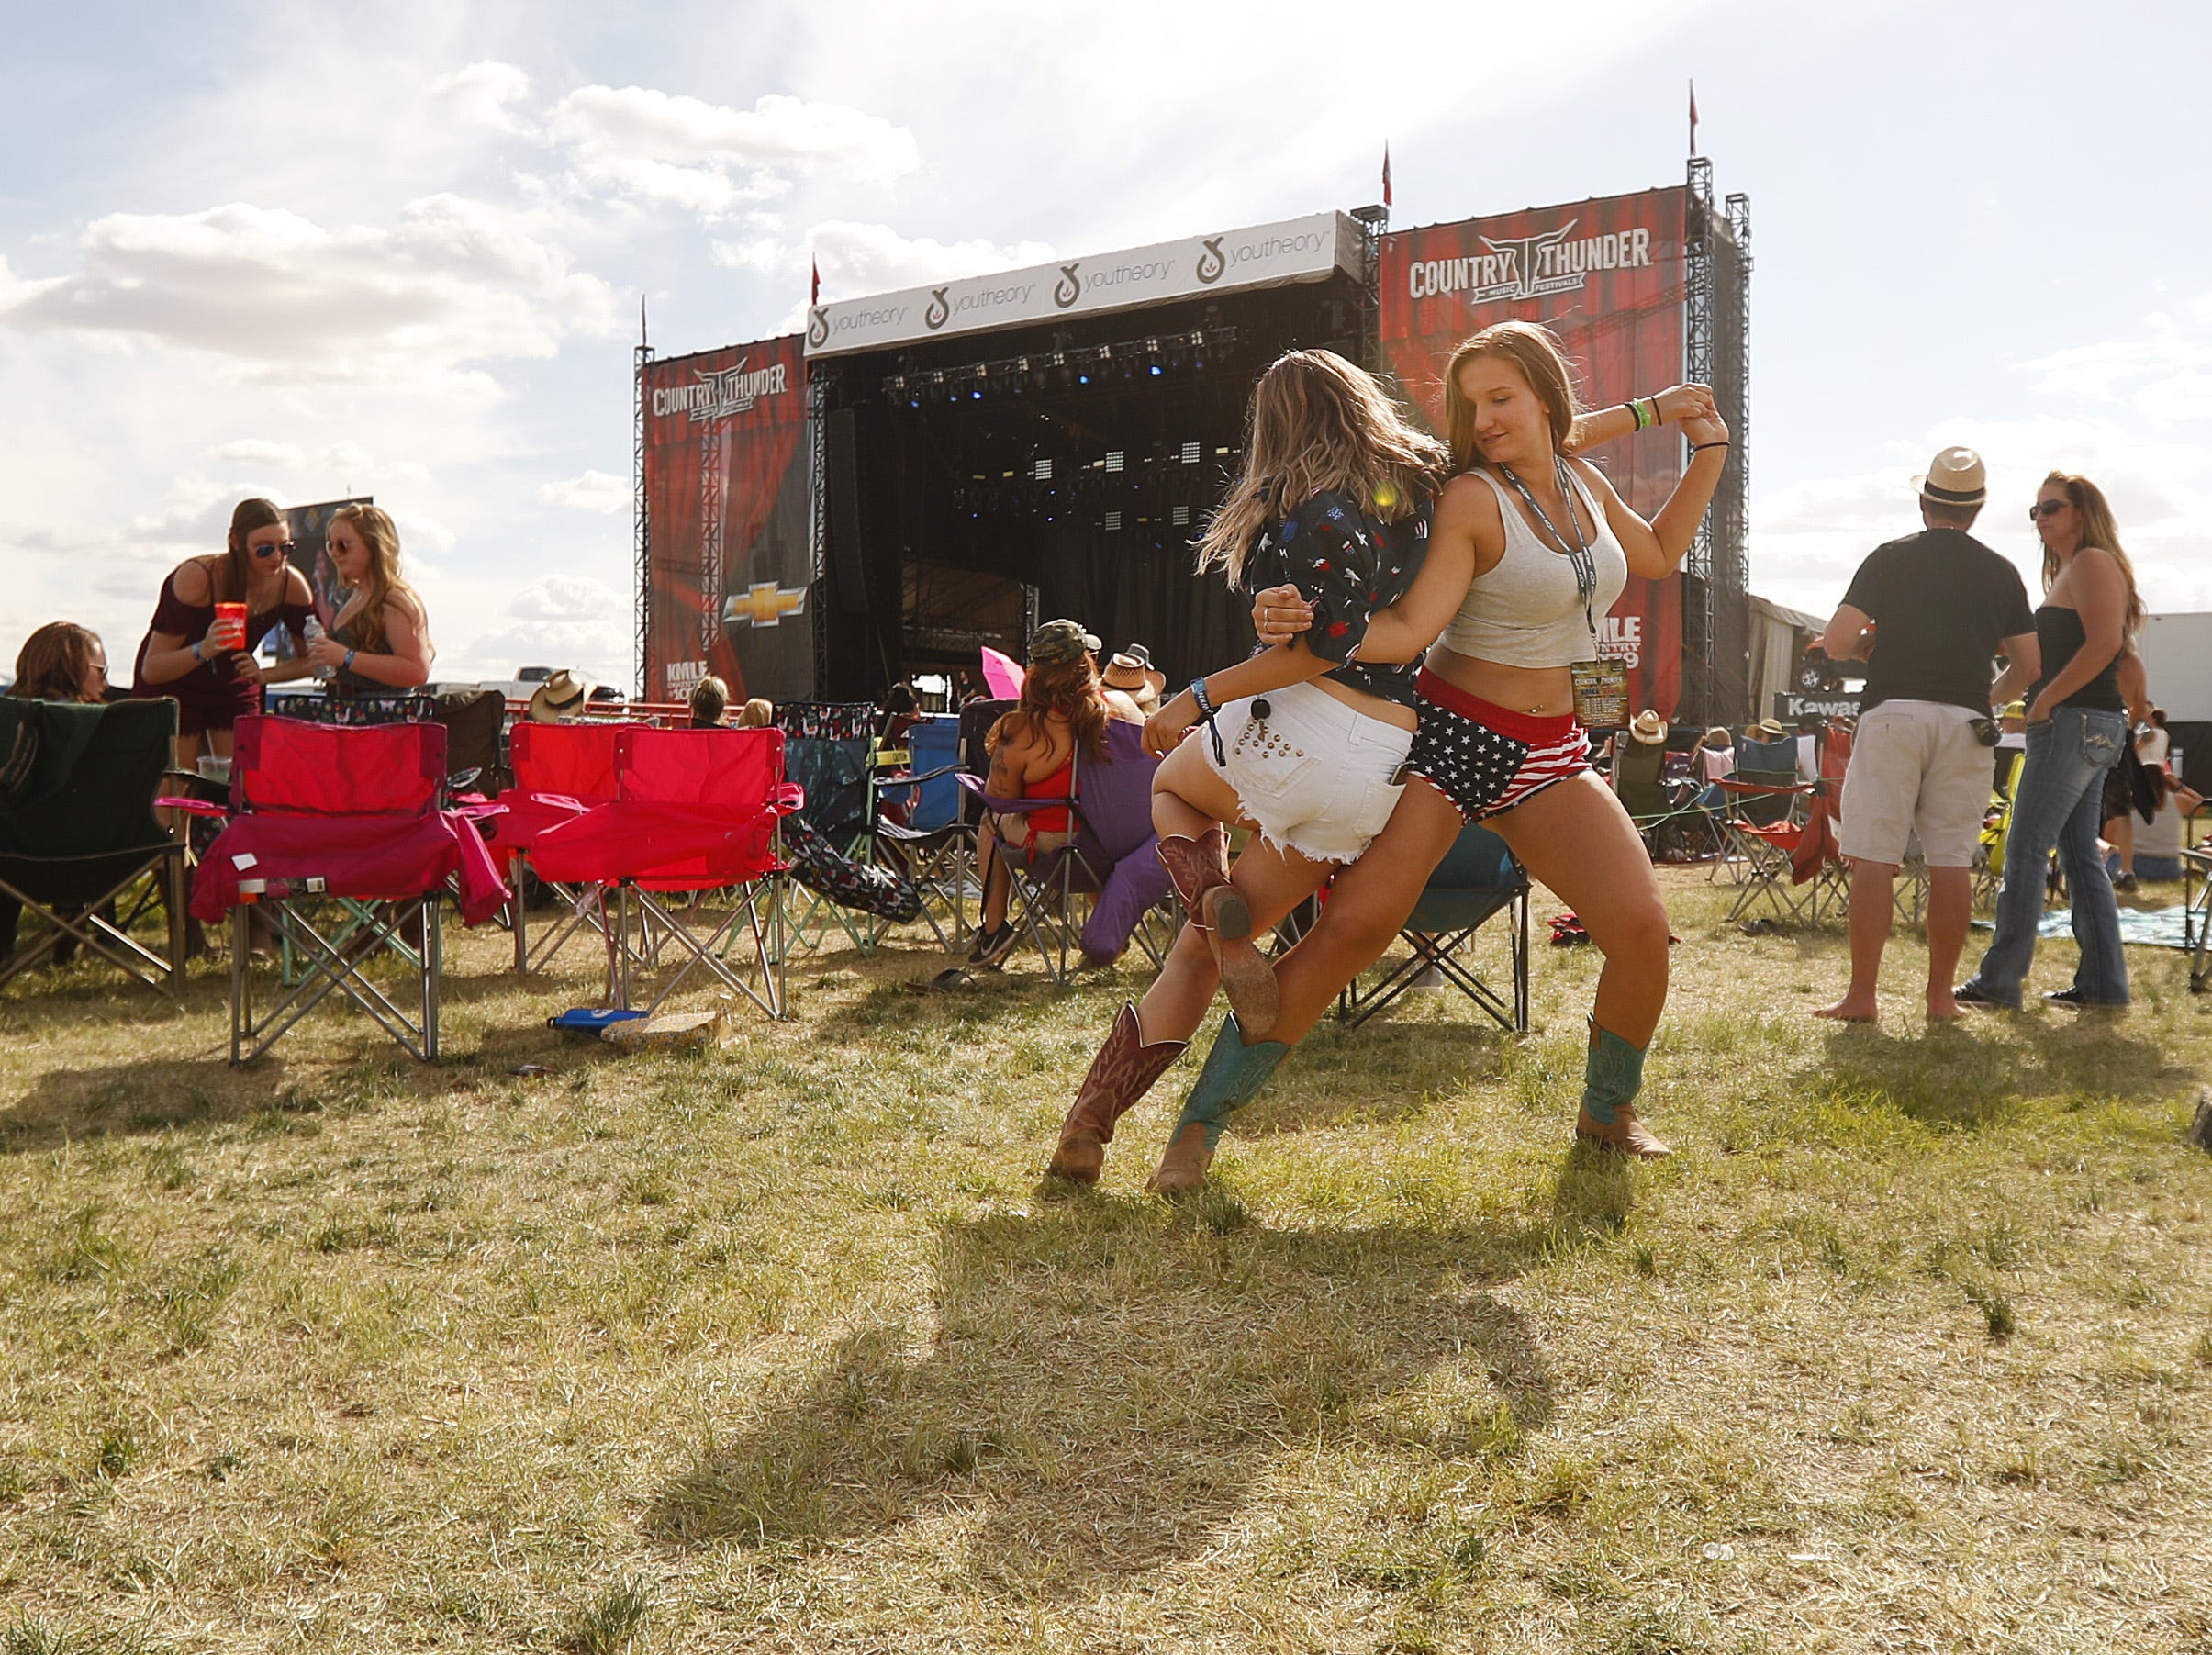 Ashley Tutherow (right) dances with Belen Bustillos as they listen to Abby Anderson during Country Thunder in Florence, Ariz., on Friday, April 12, 2019.